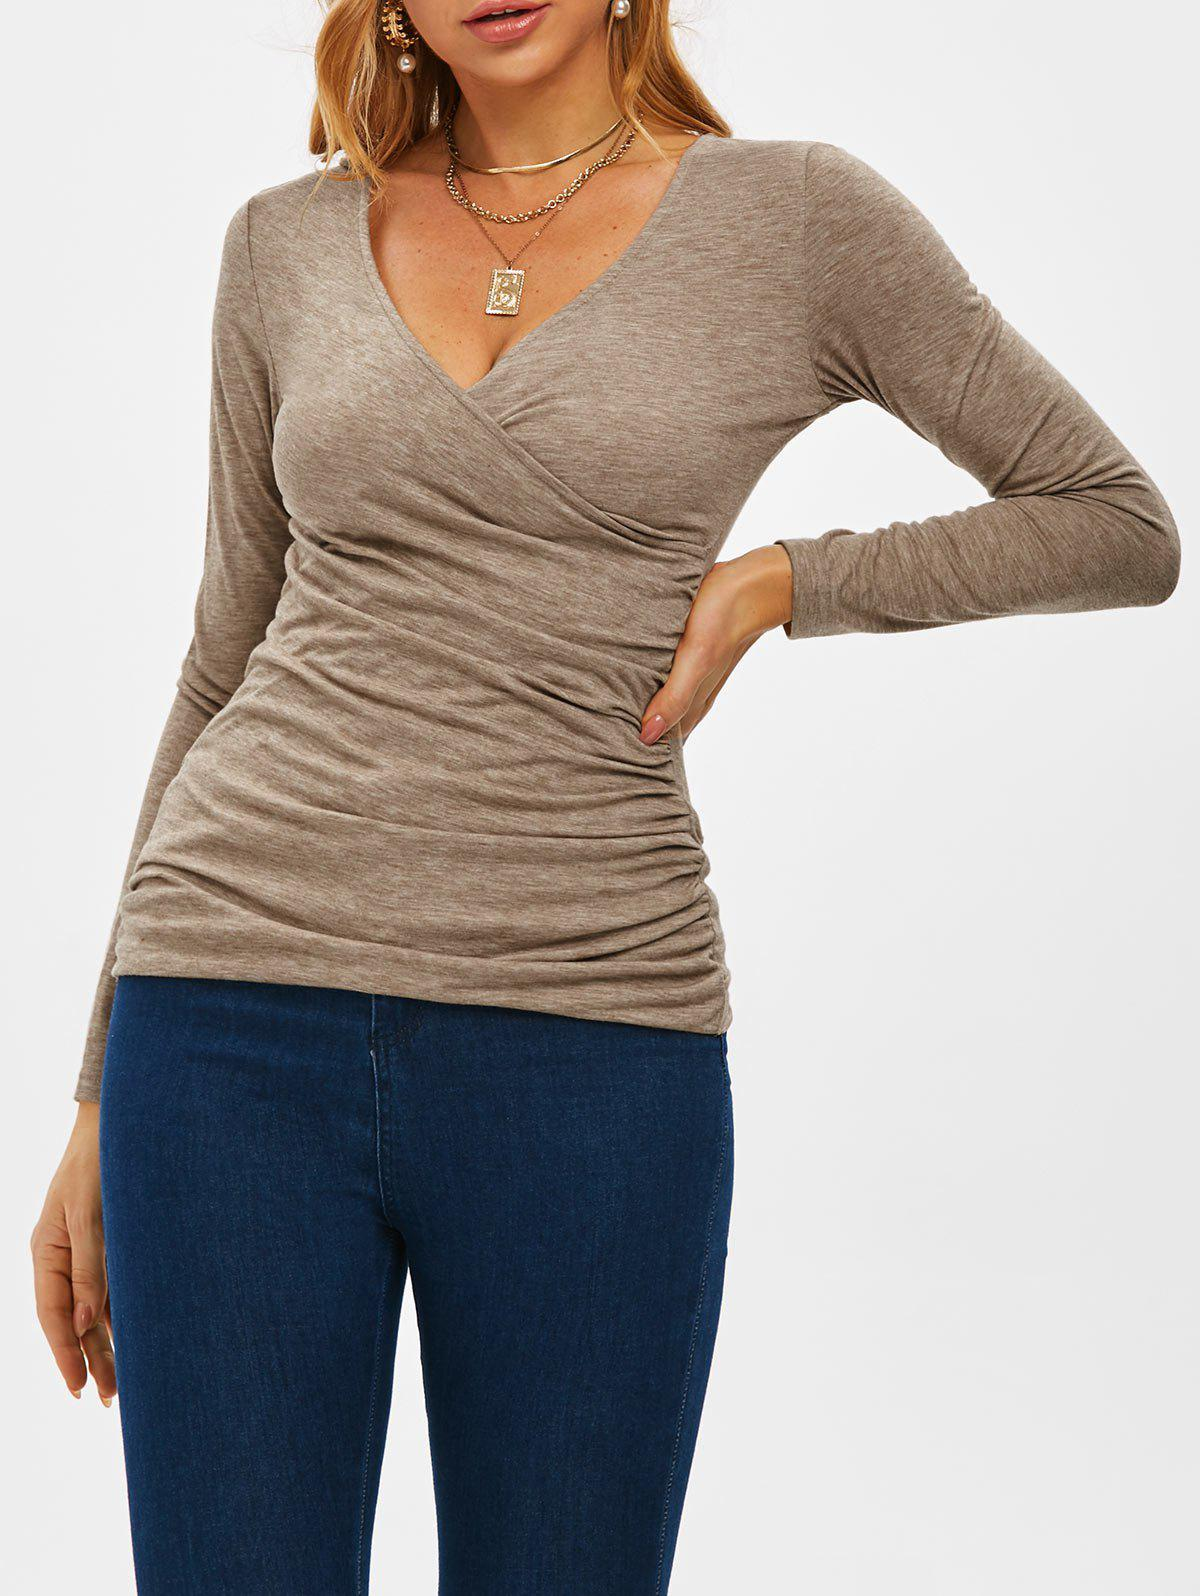 Fitted V Neck Ruched Wrap Top - COFFEE XL